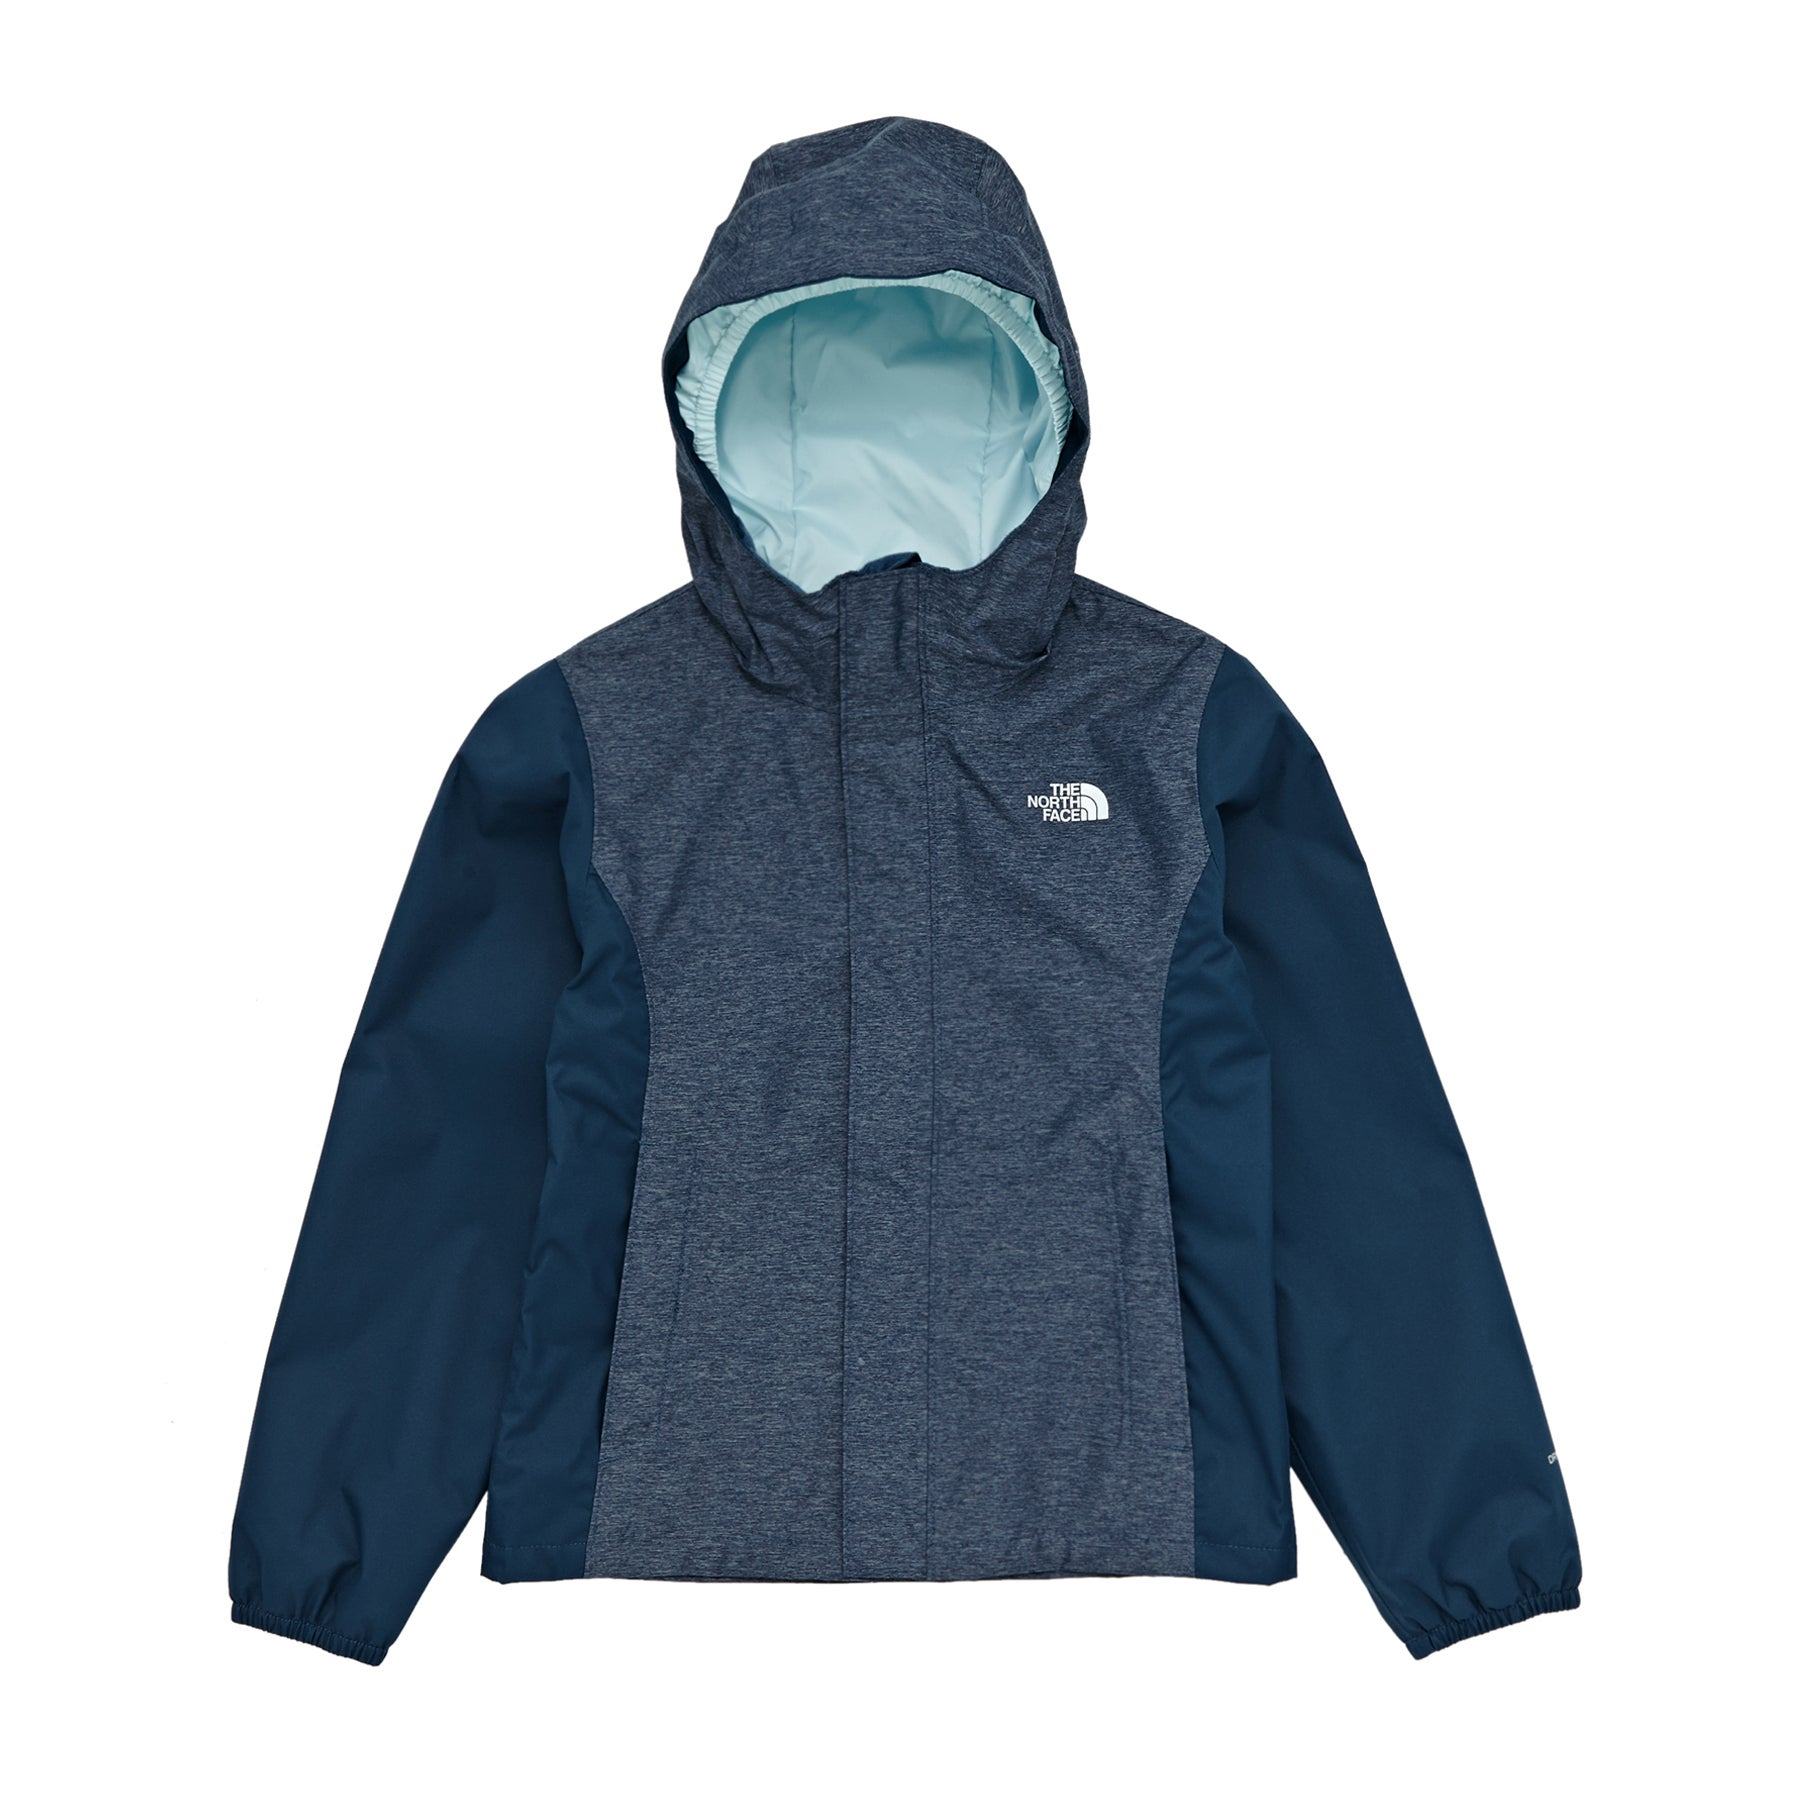 8f5cfe43b North Face Resolve Reflective Girls Jacket available from Surfdome